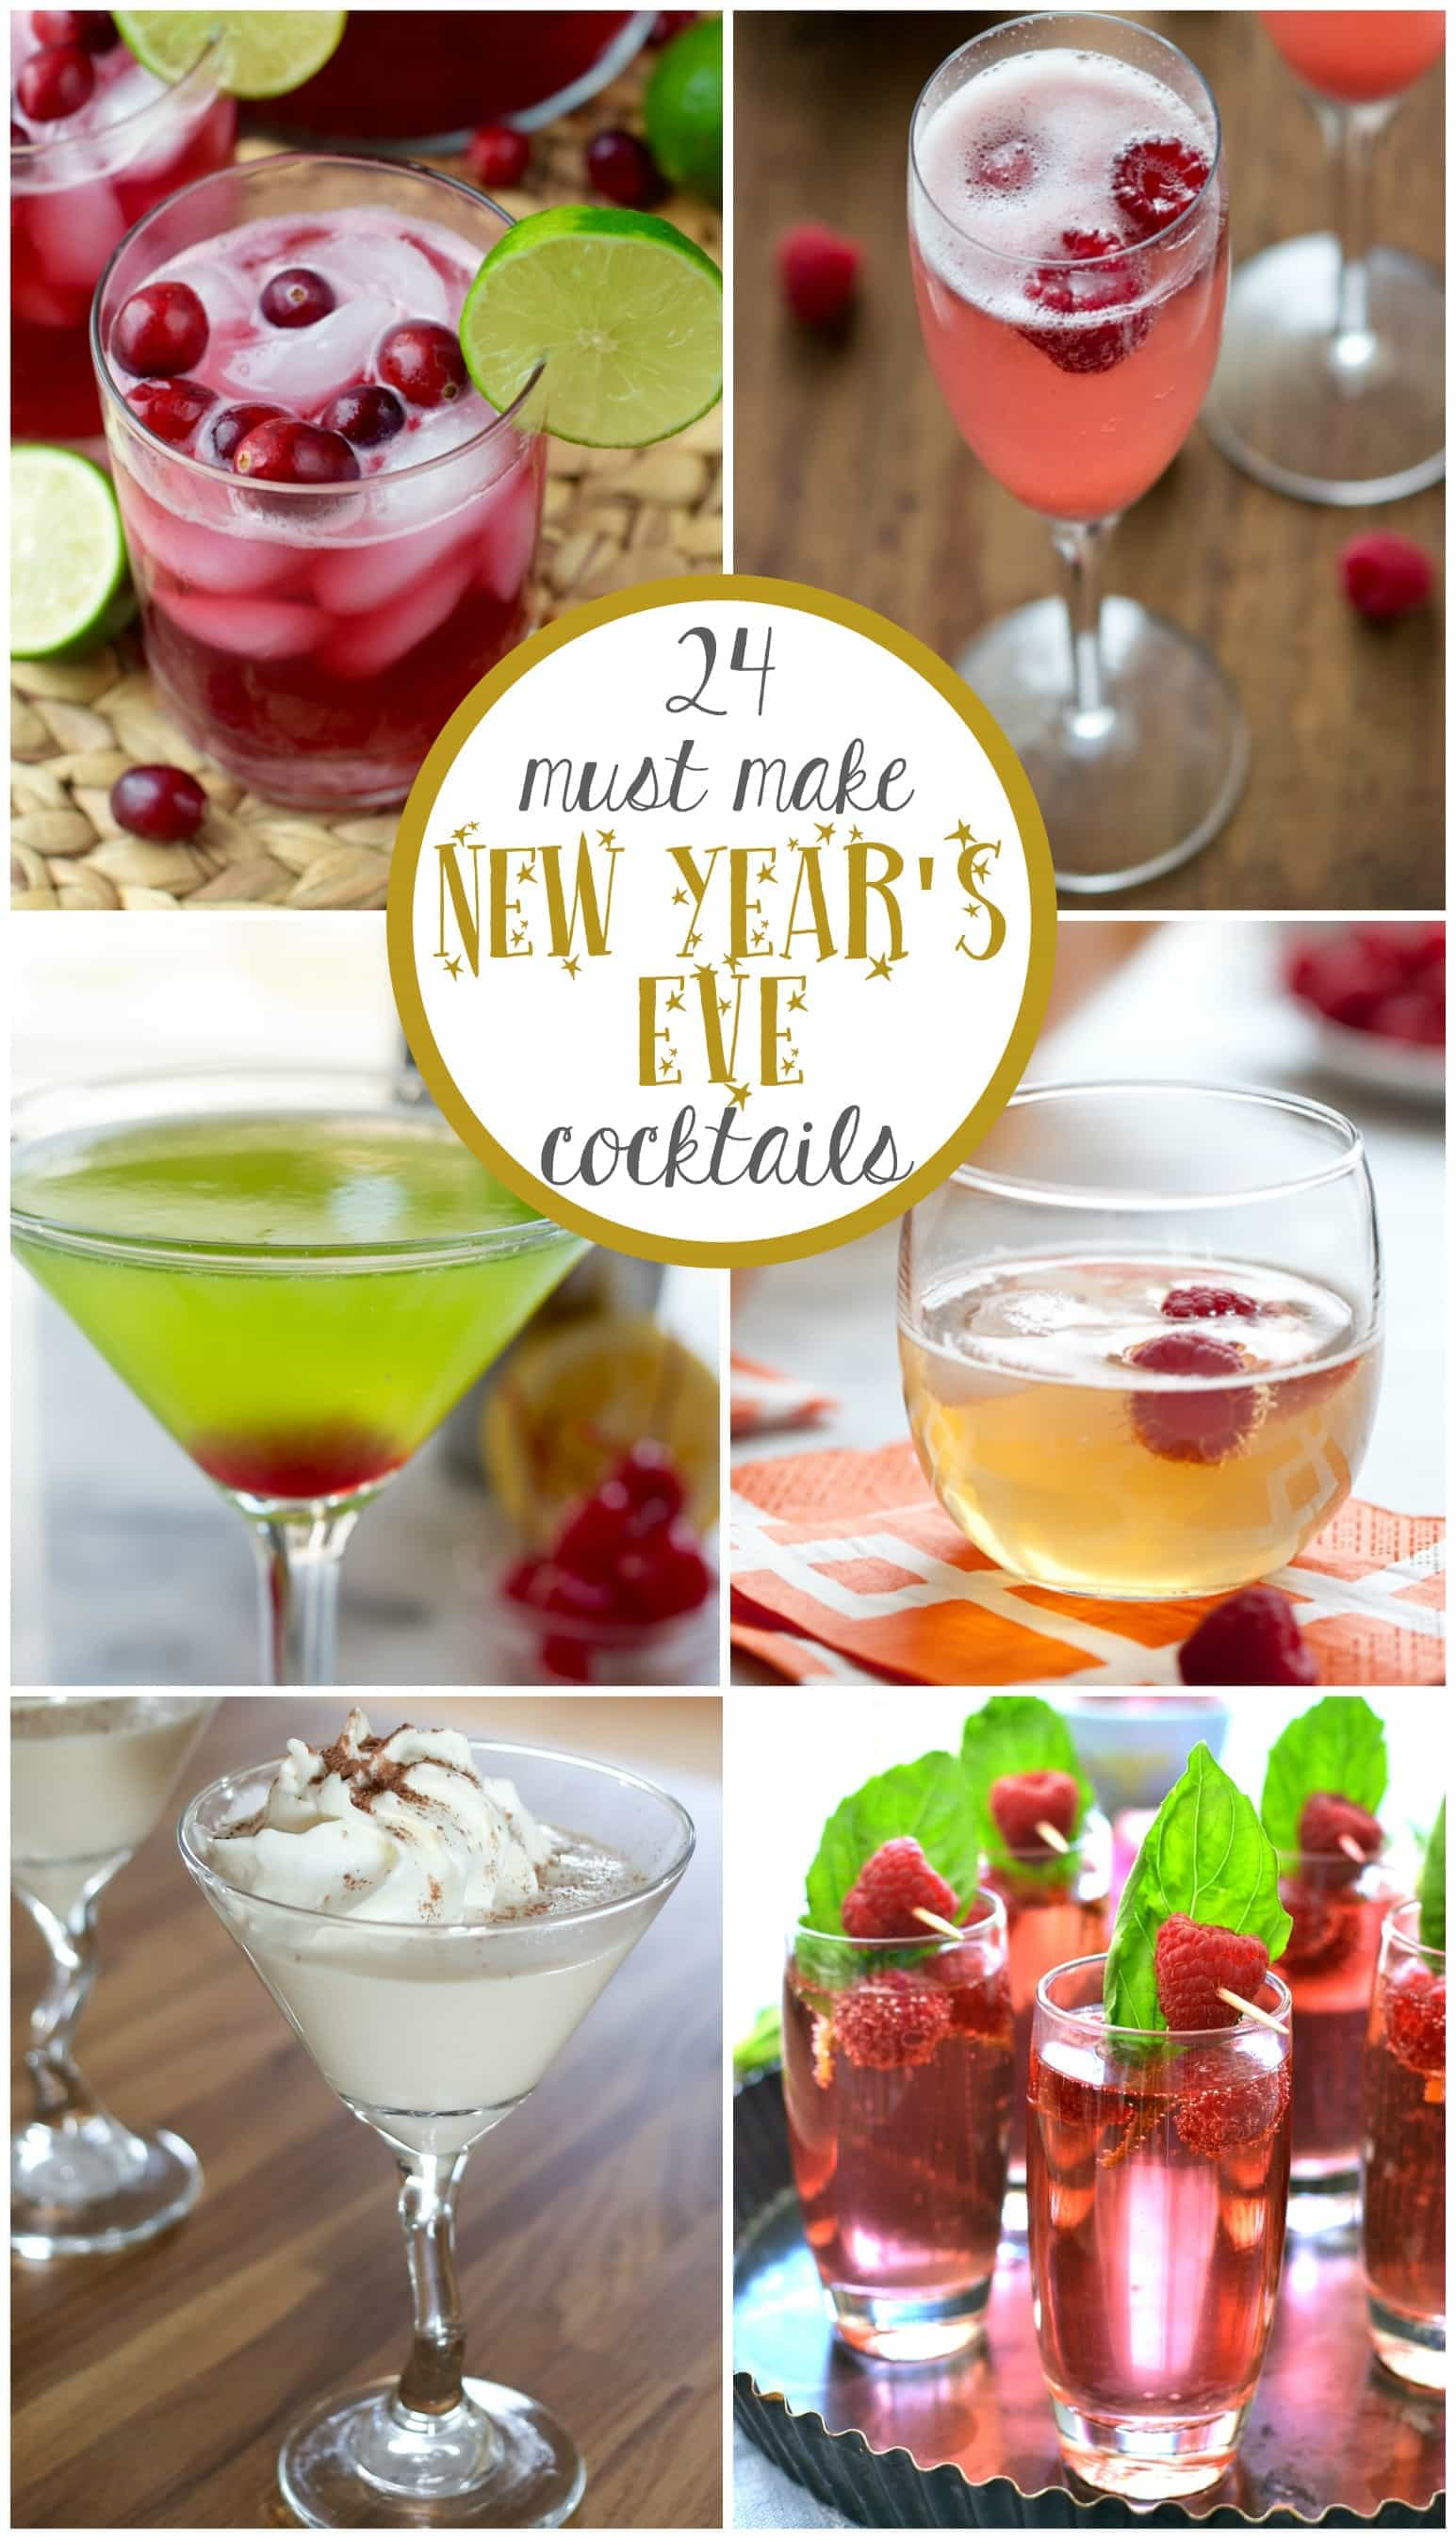 24 New Years Eve Cocktail Recipes you must make this year! Champagne, sangria, punch, martinis - these easy recipes will delight a crowd!